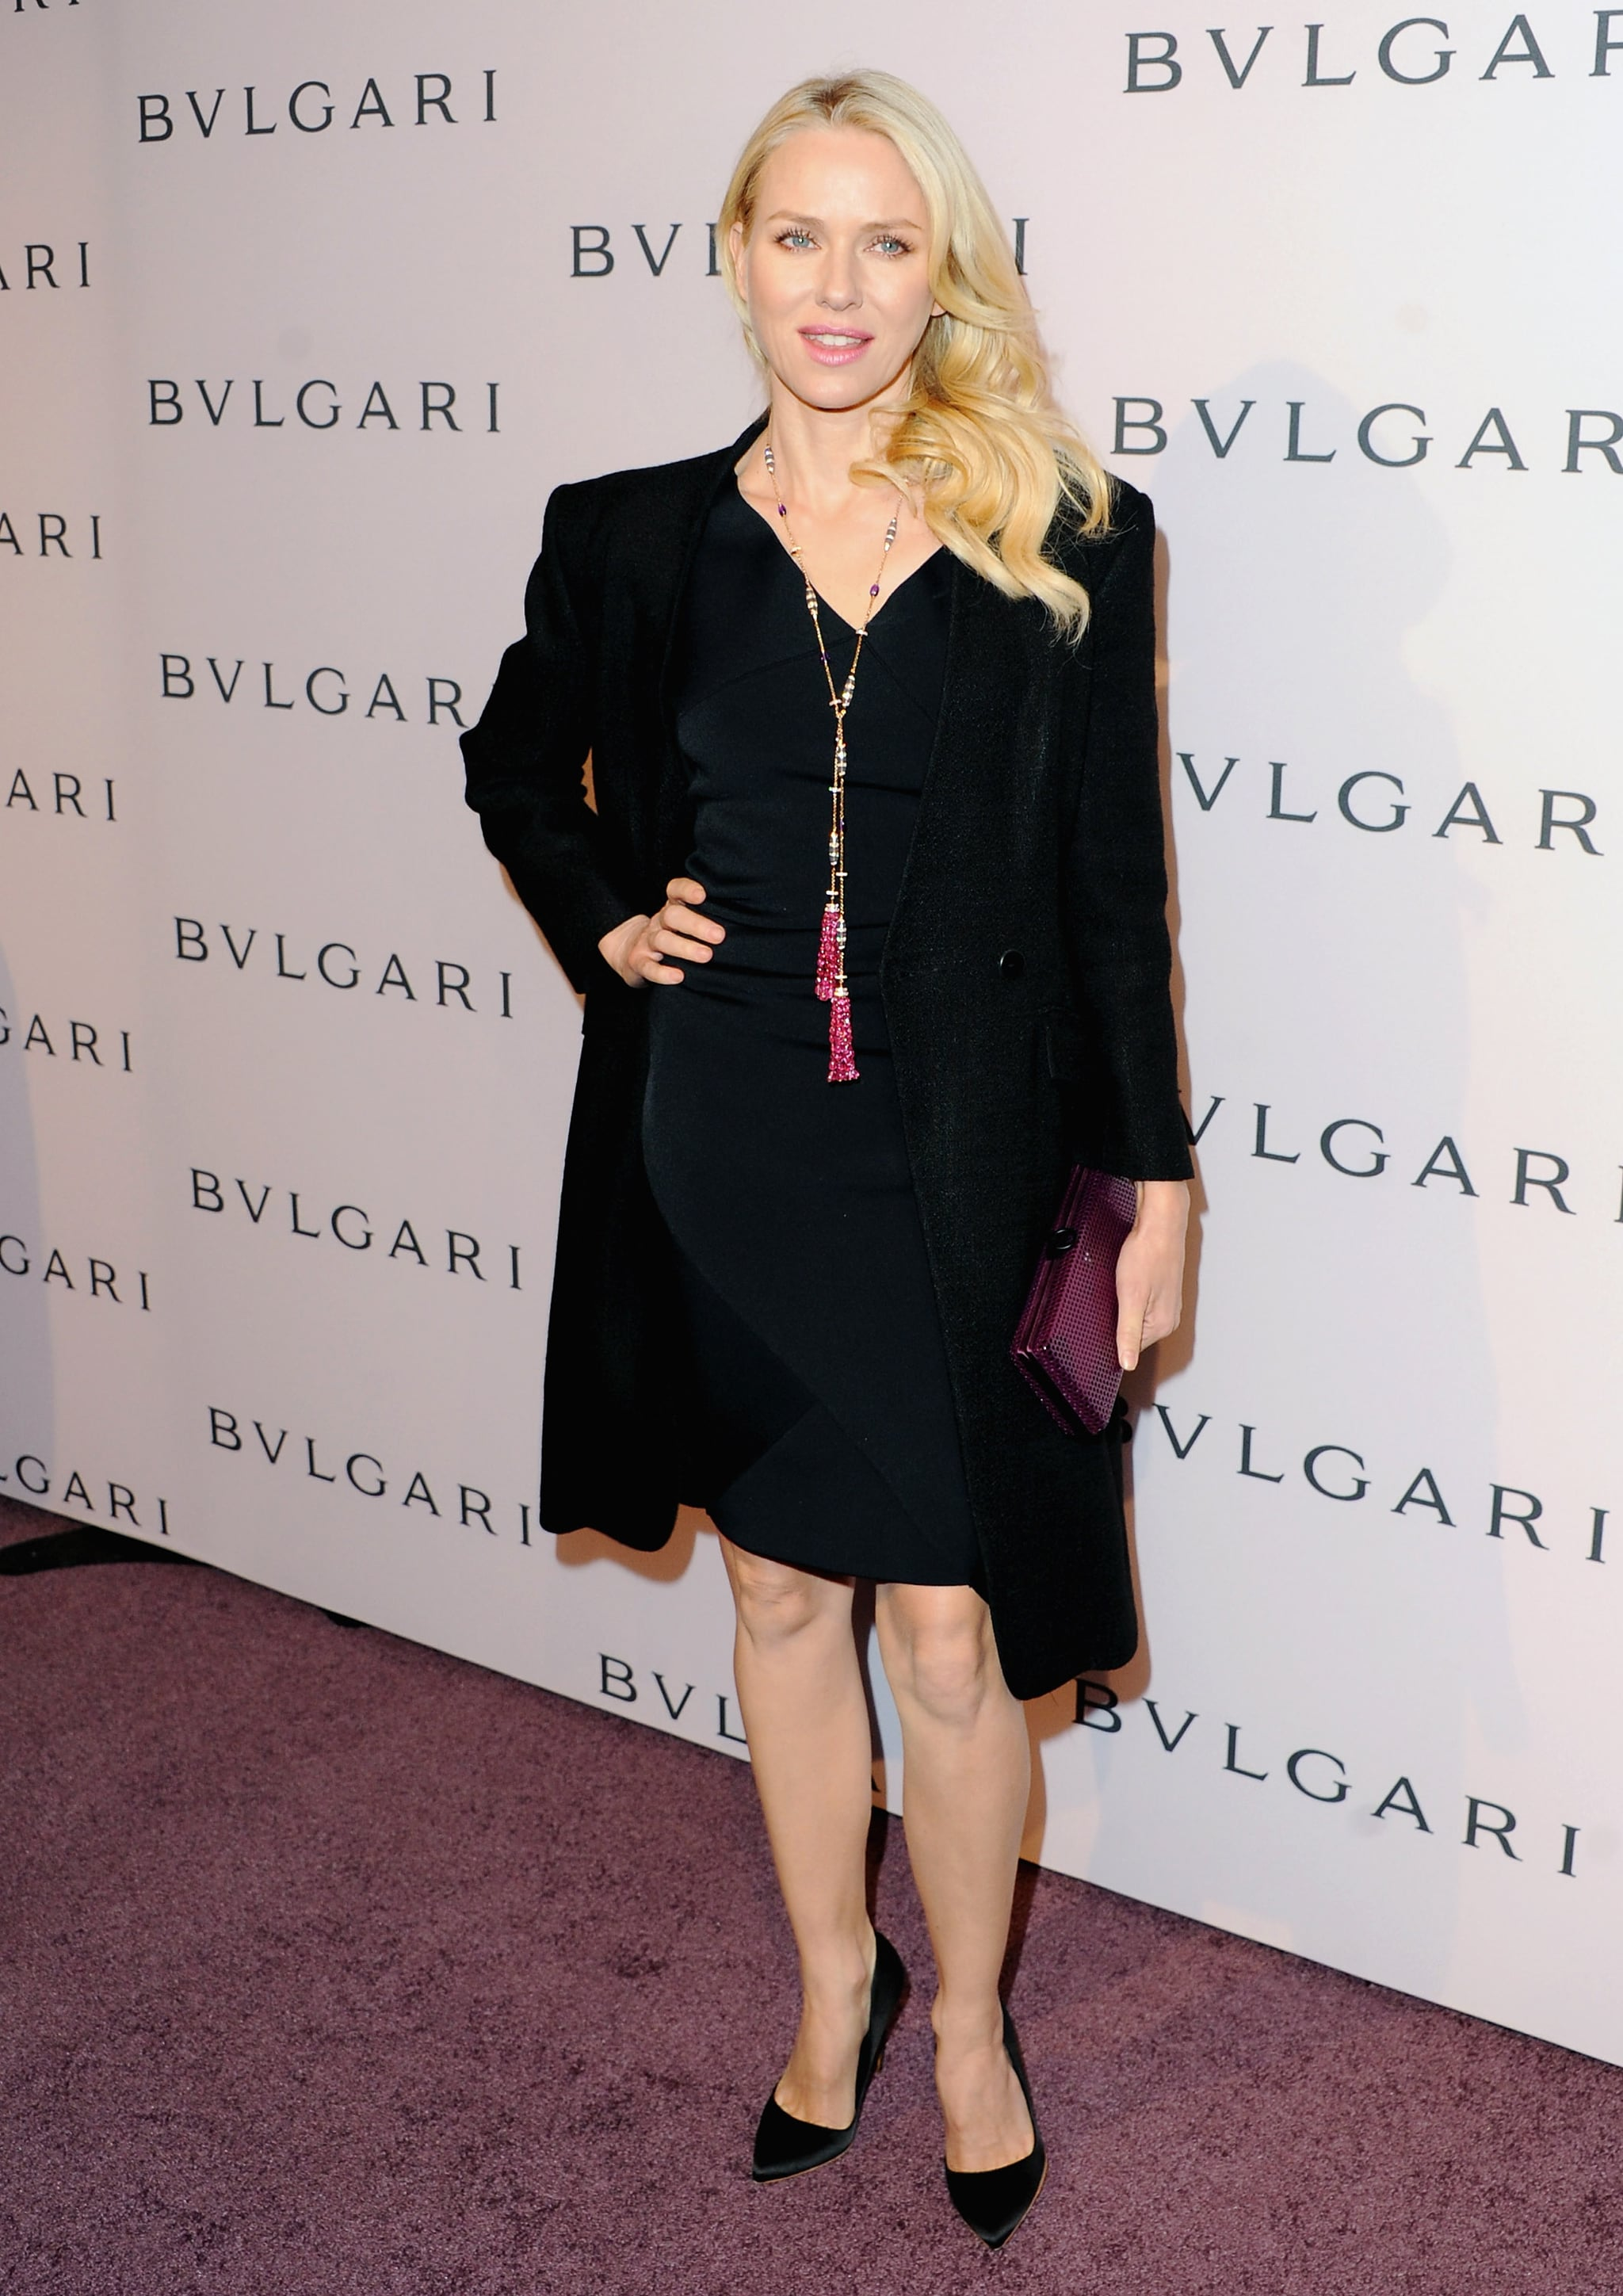 Naomi Watts wore a long necklace.